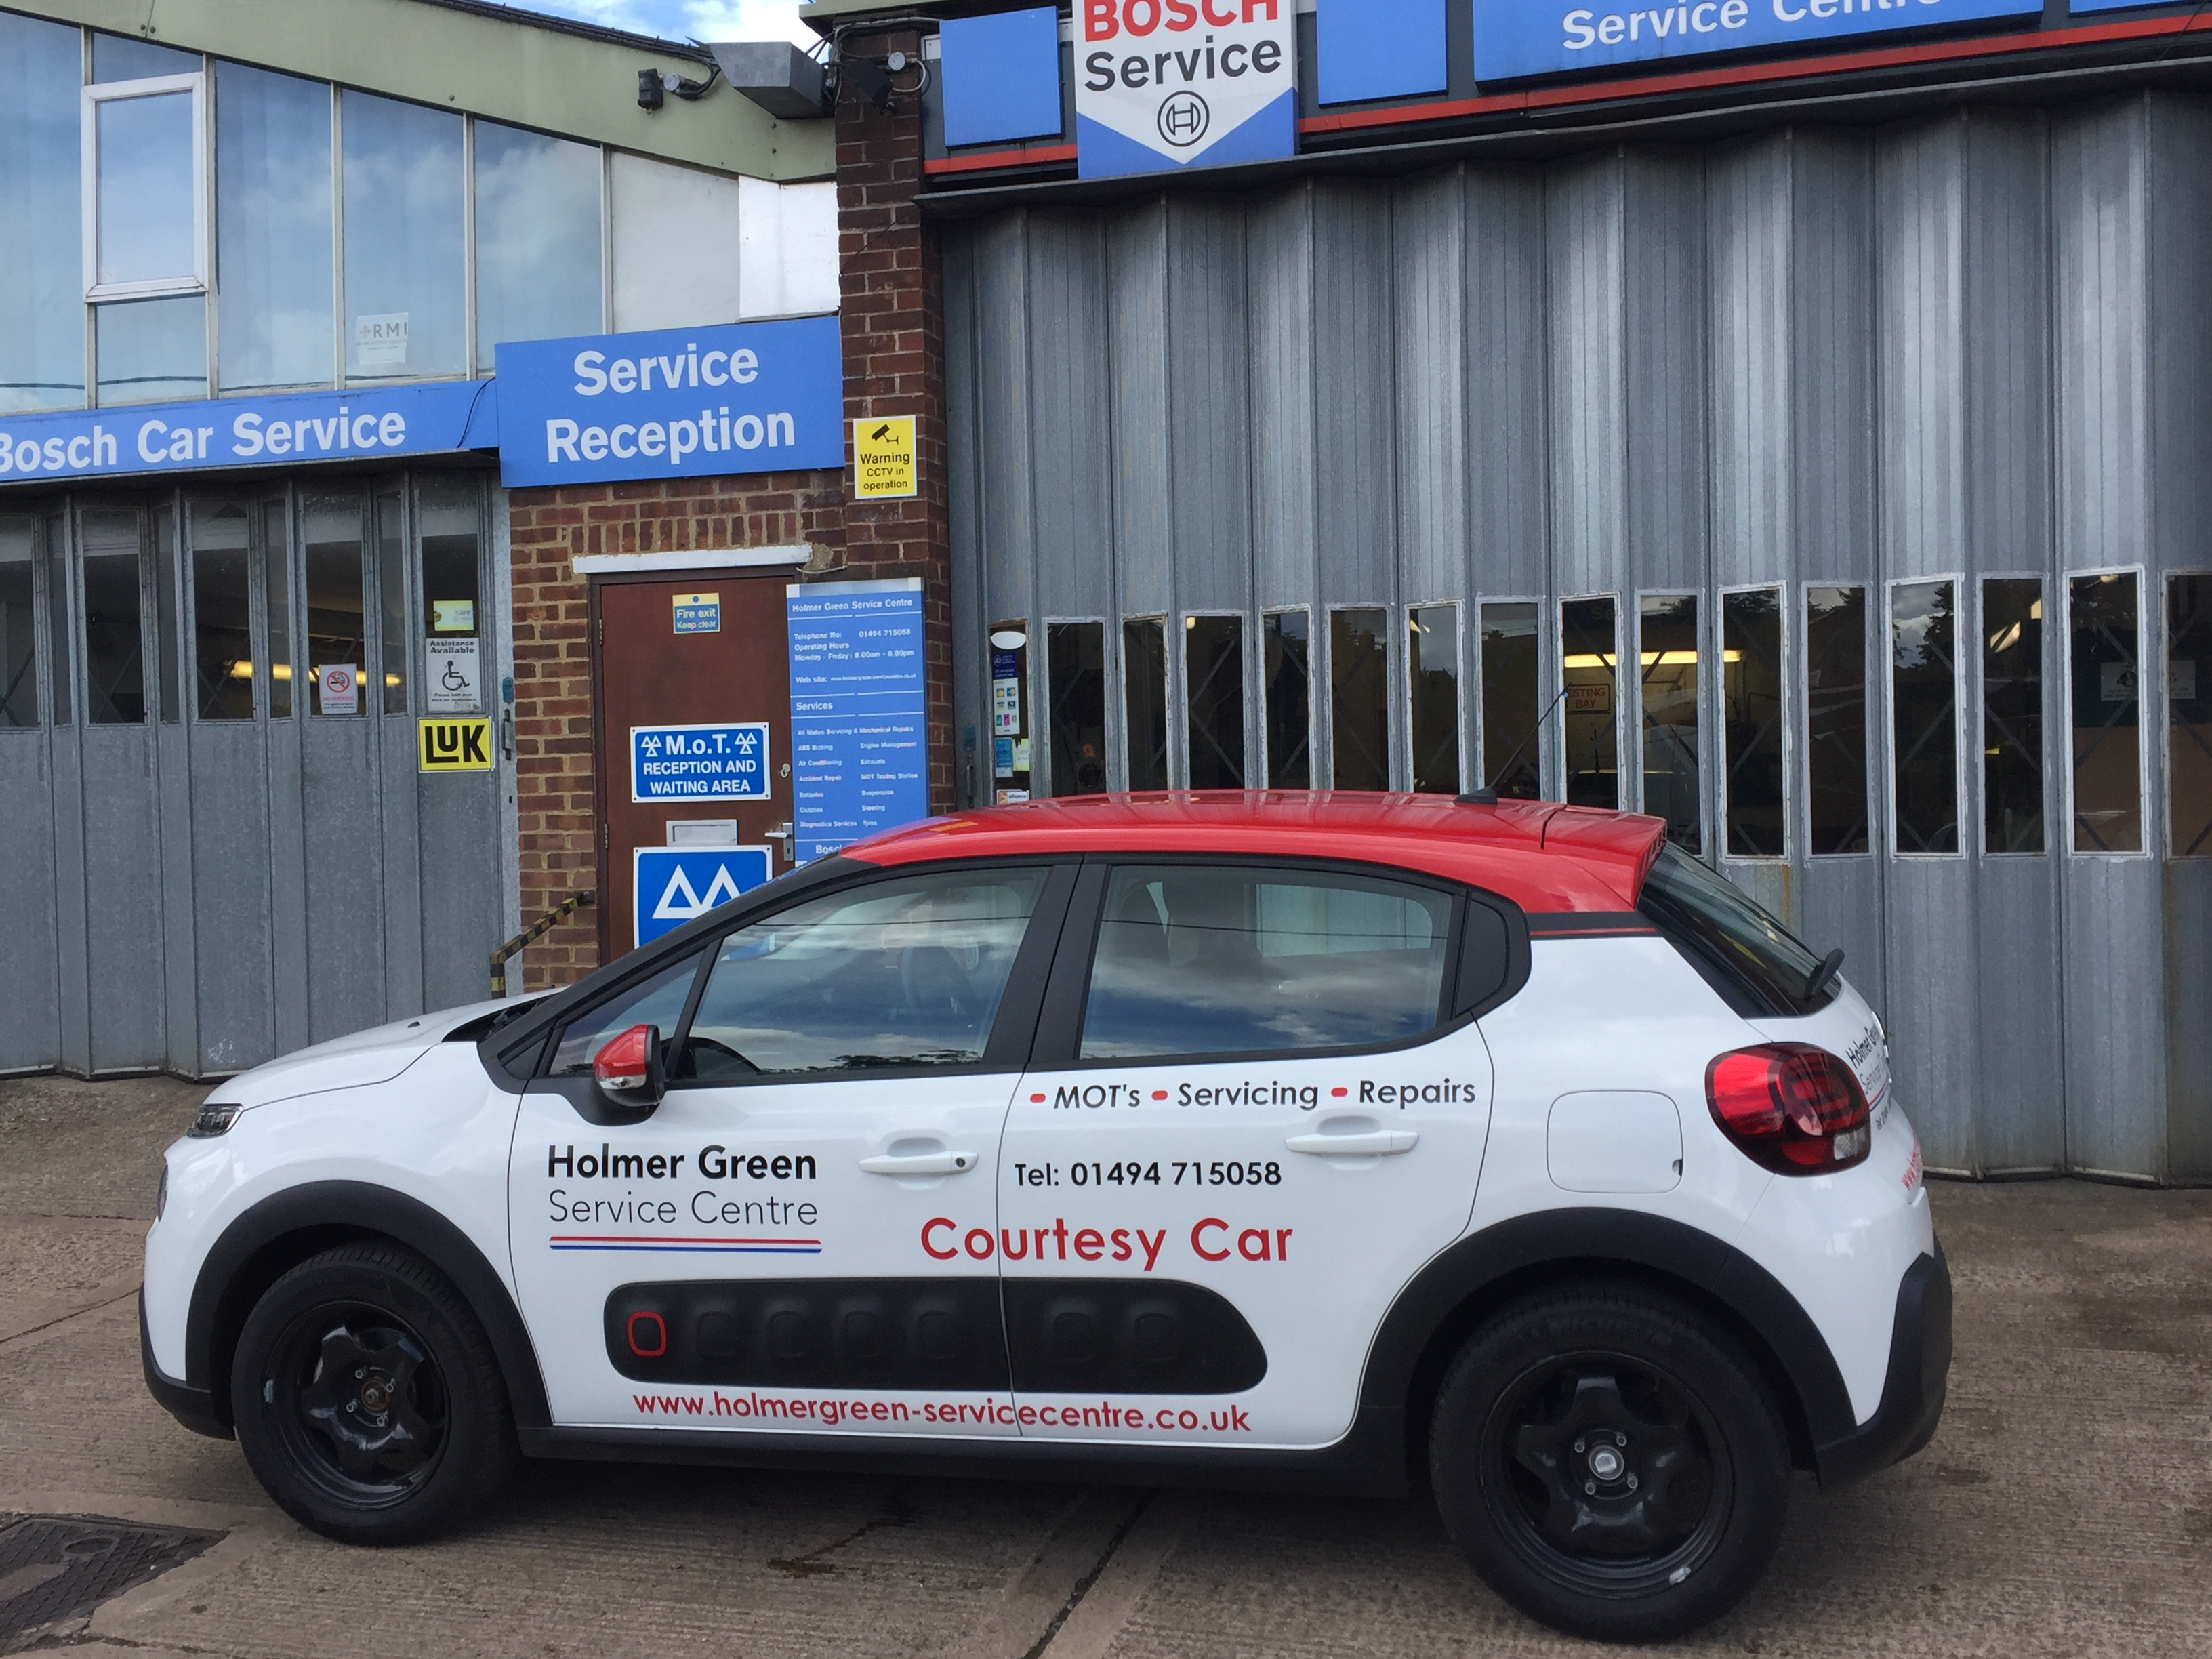 Collection Delivery - Cool cars service centre